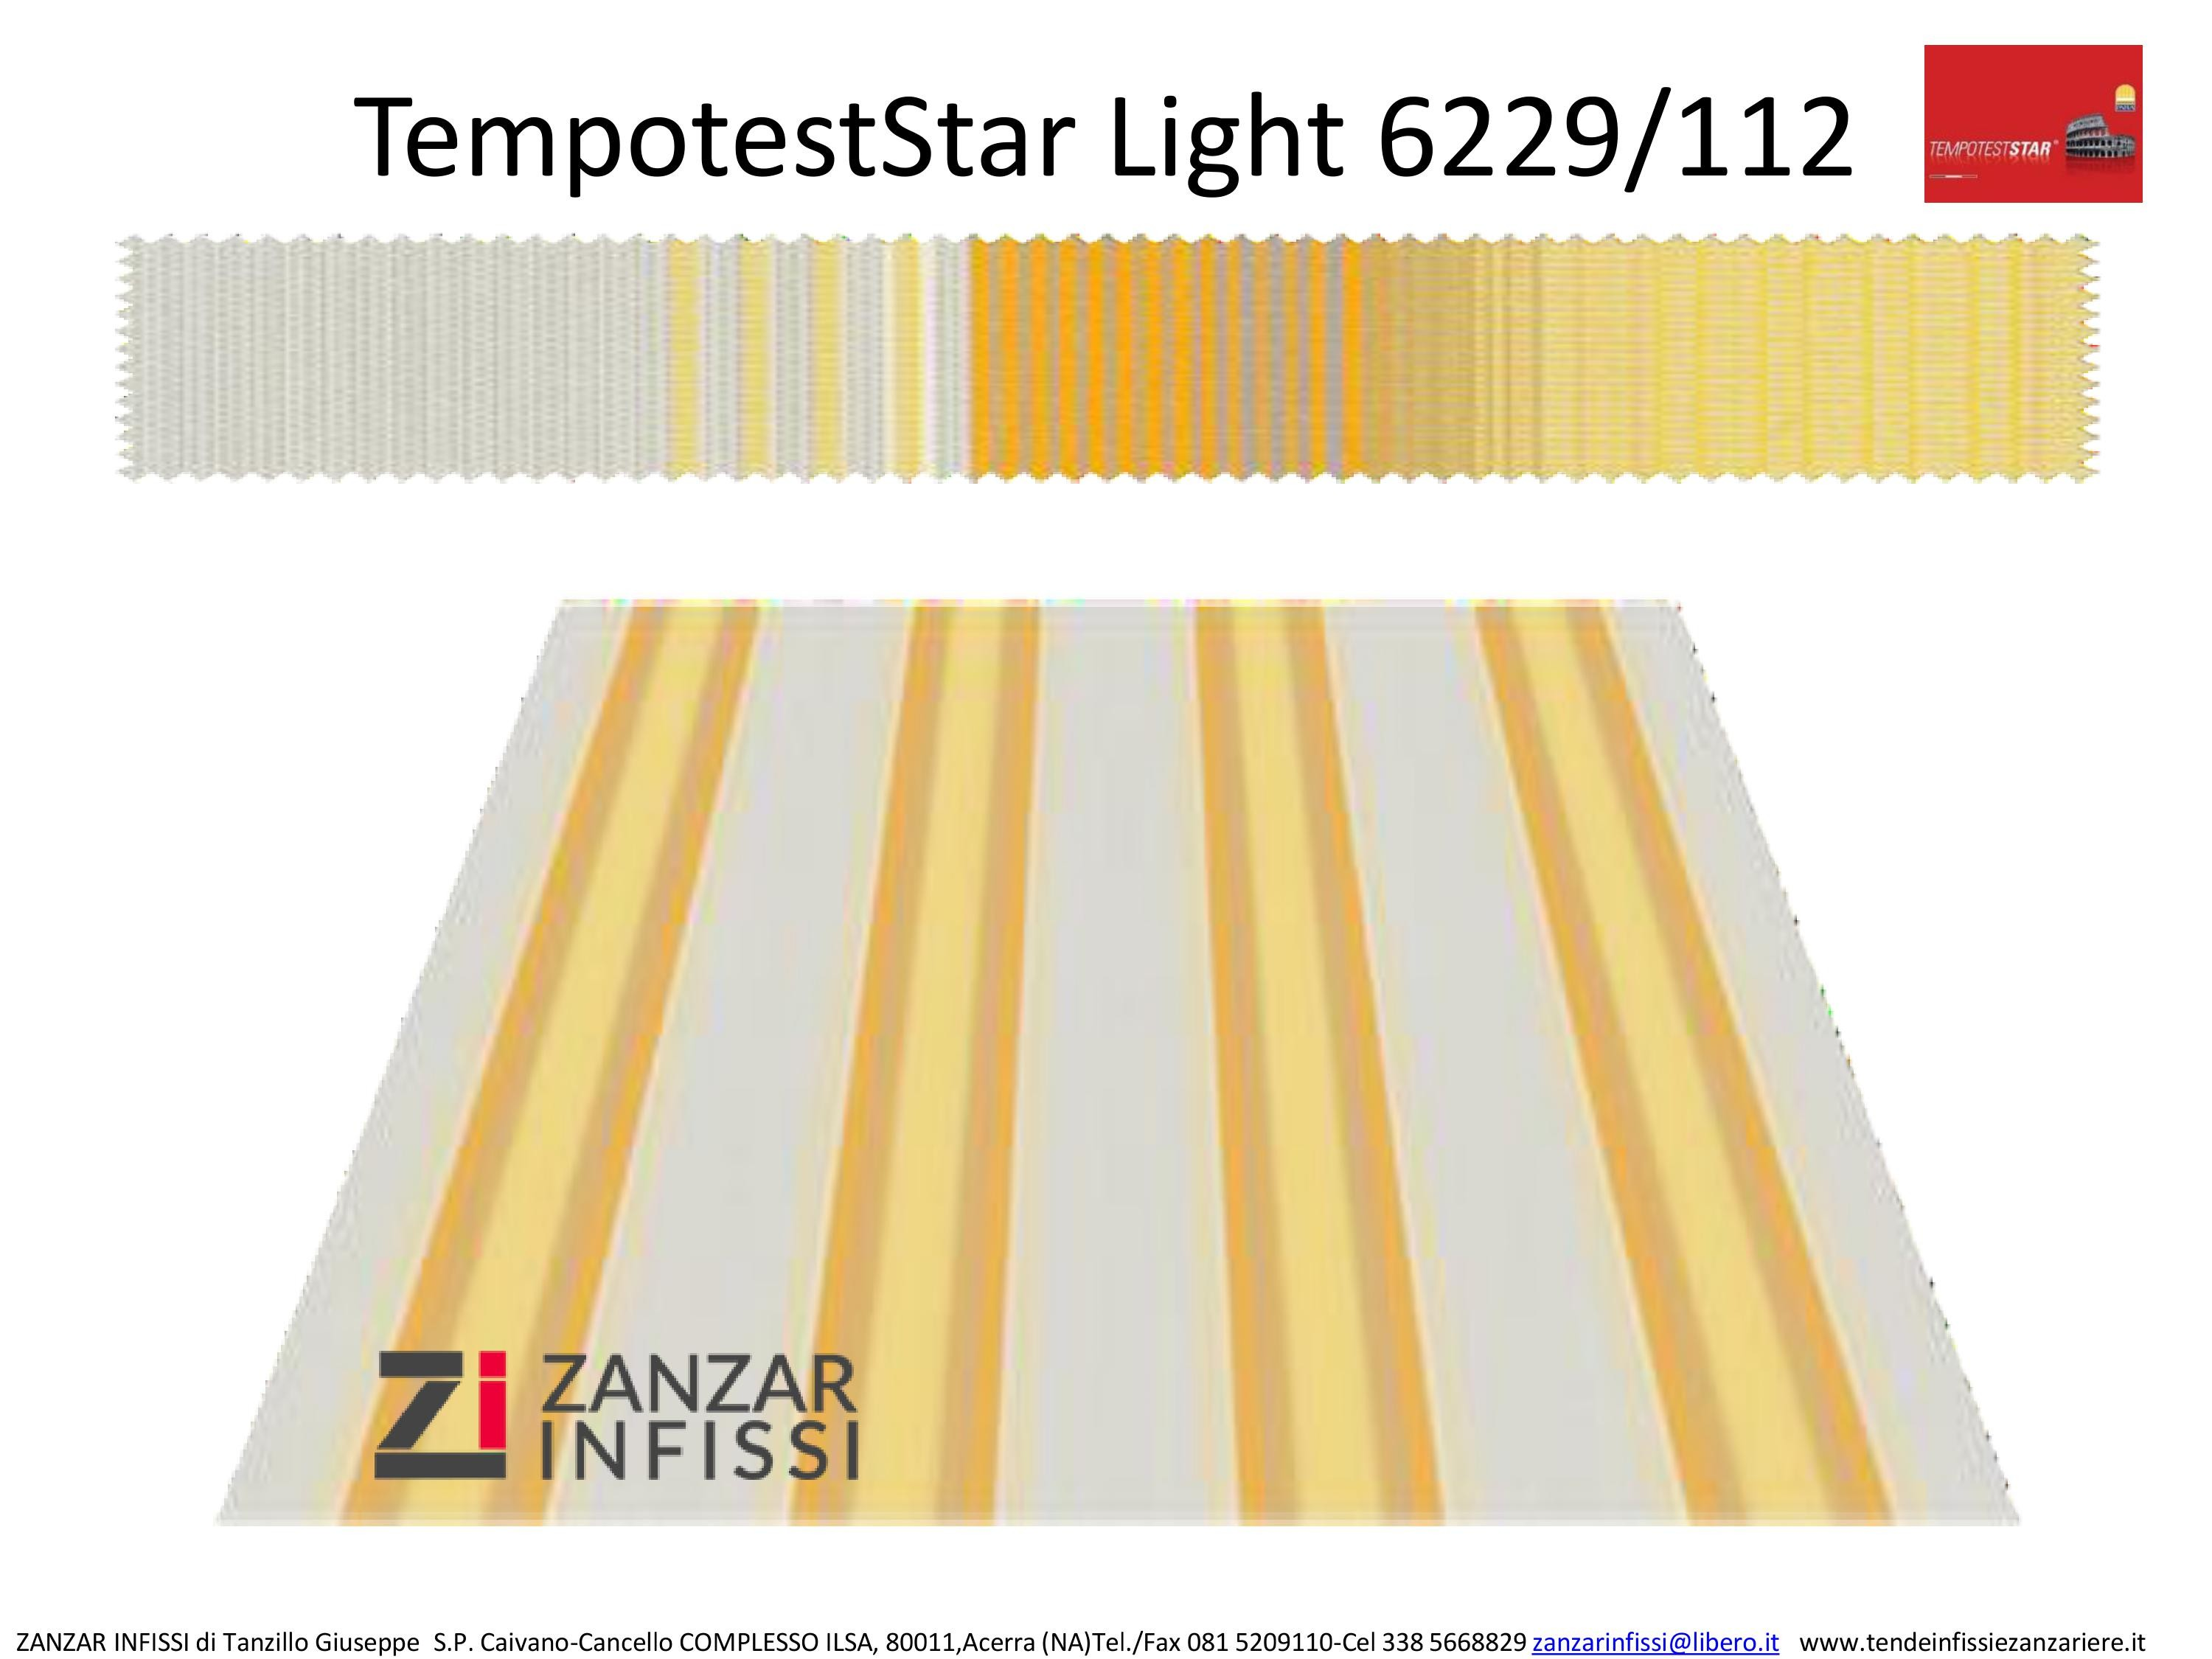 Tempotest star light 6229/122